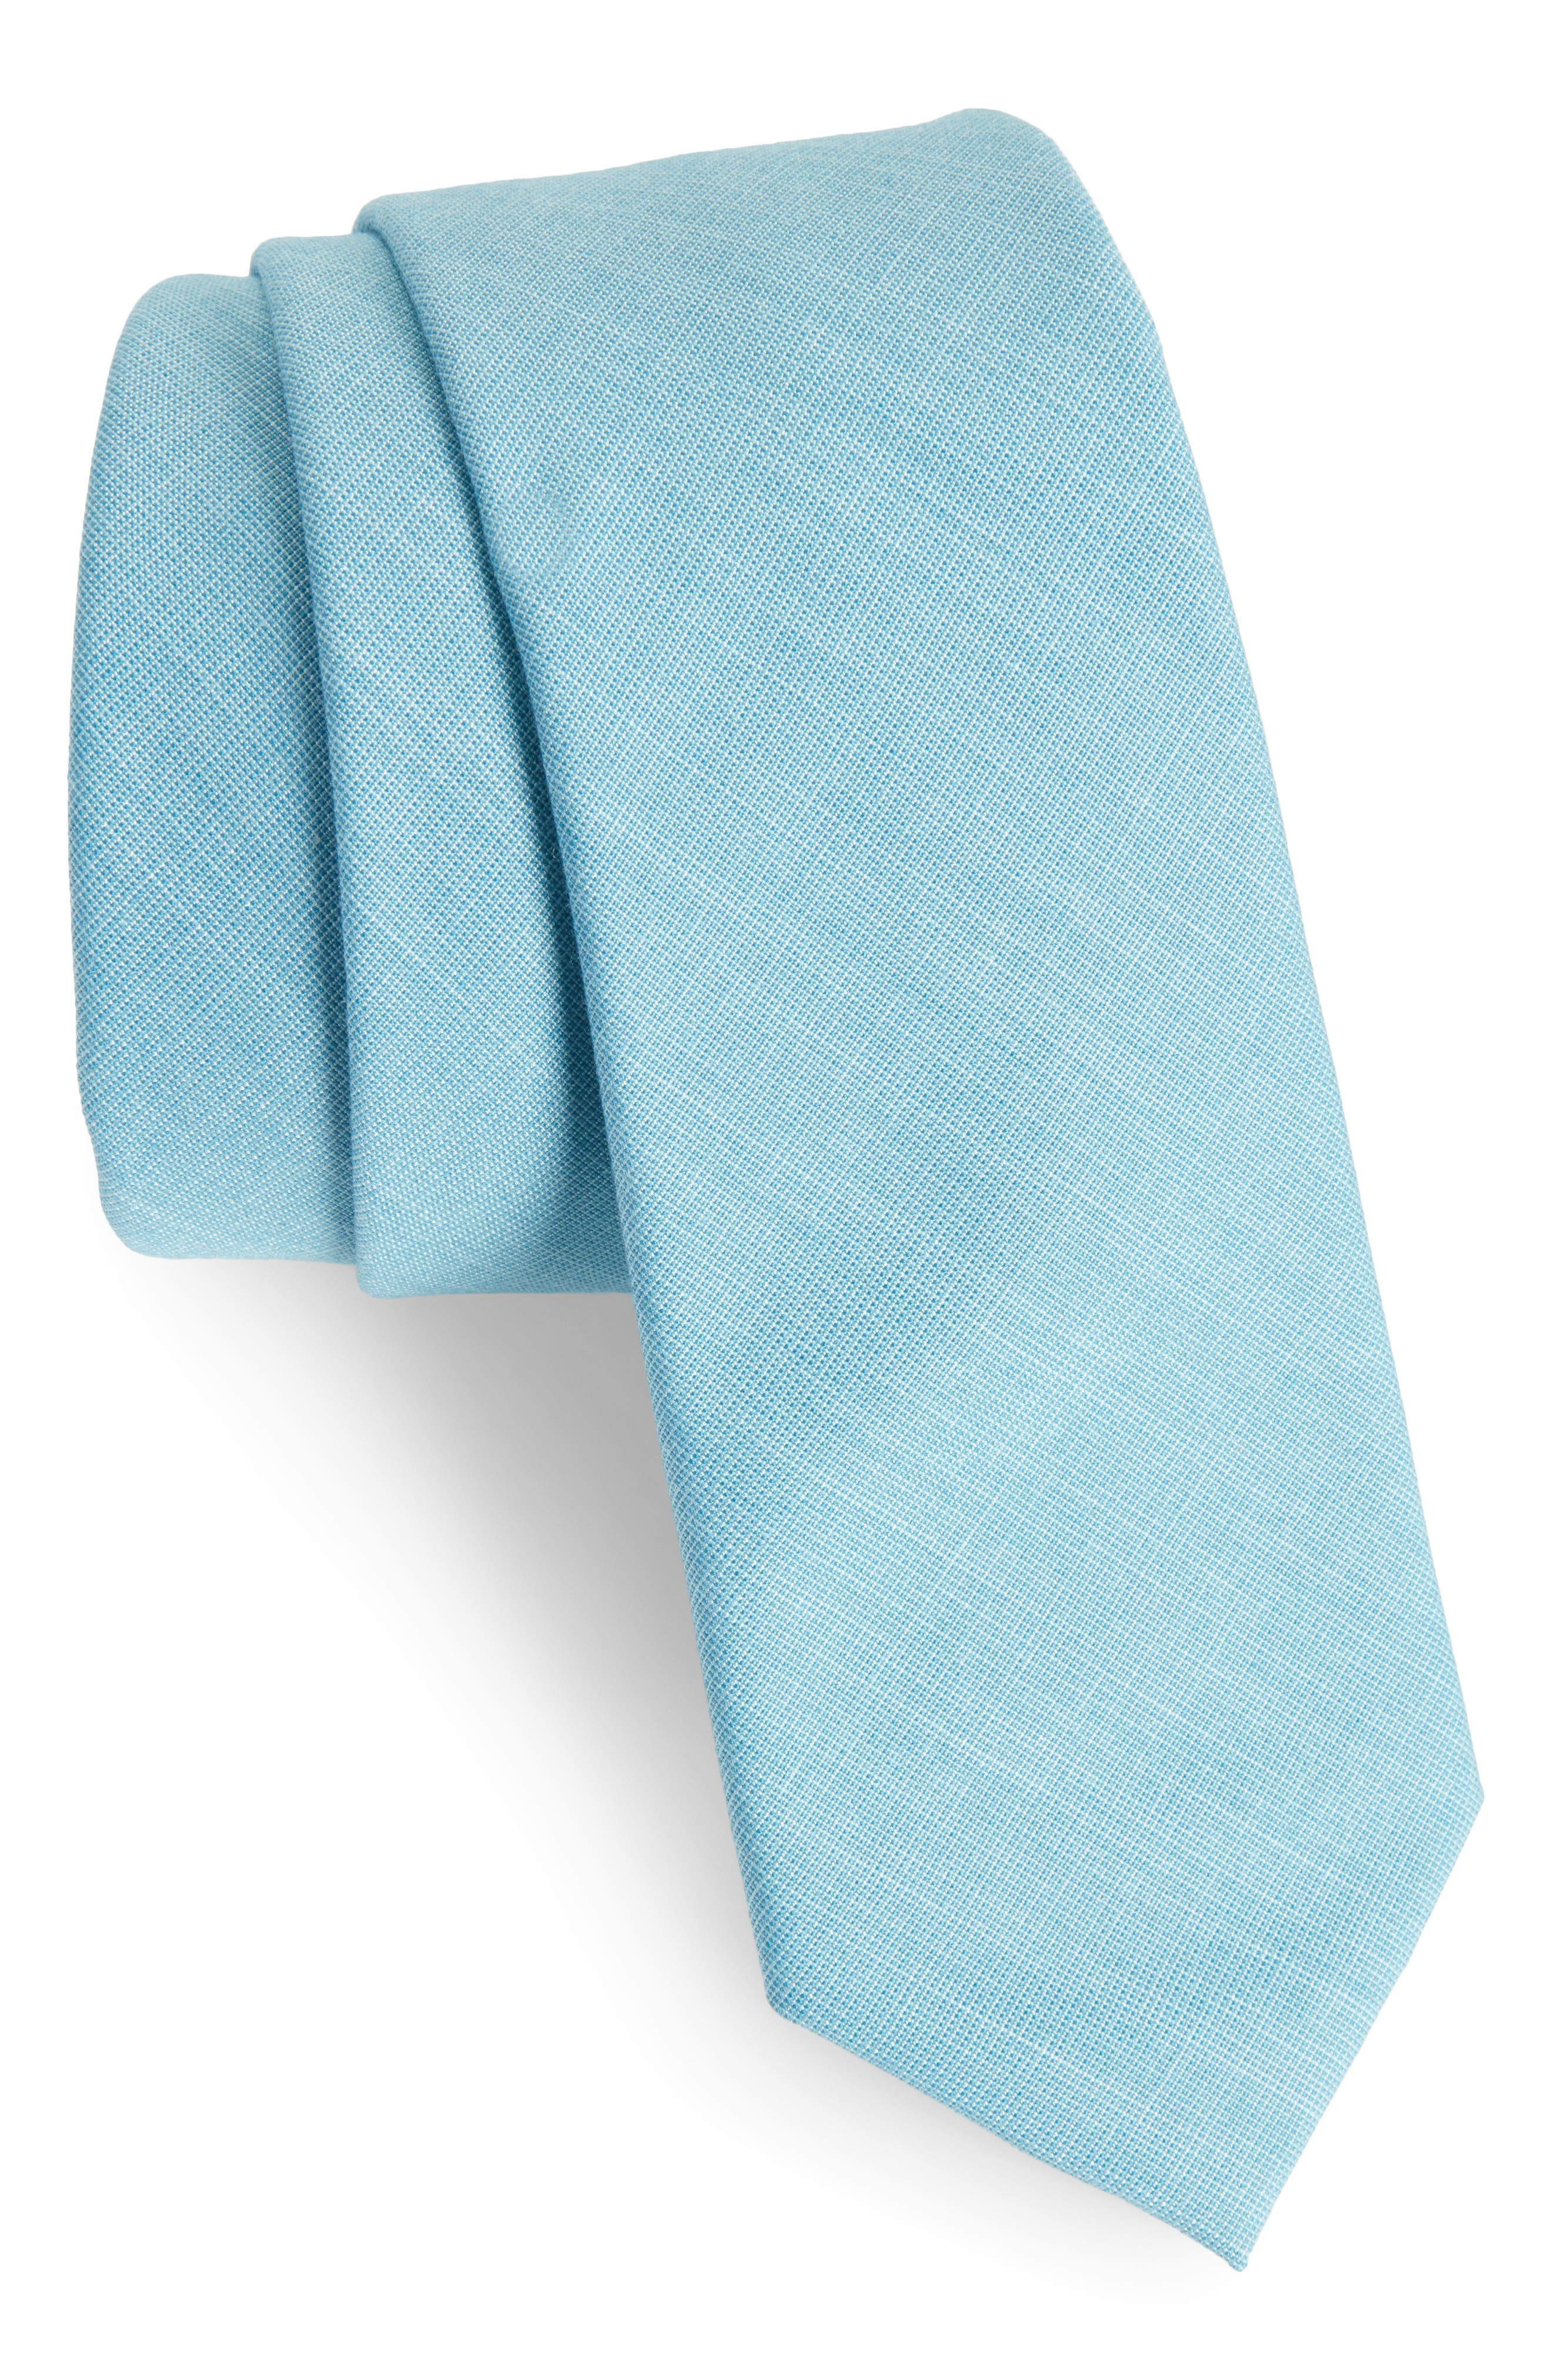 Jeffry Solid Skinny Tie,                             Main thumbnail 1, color,                             450